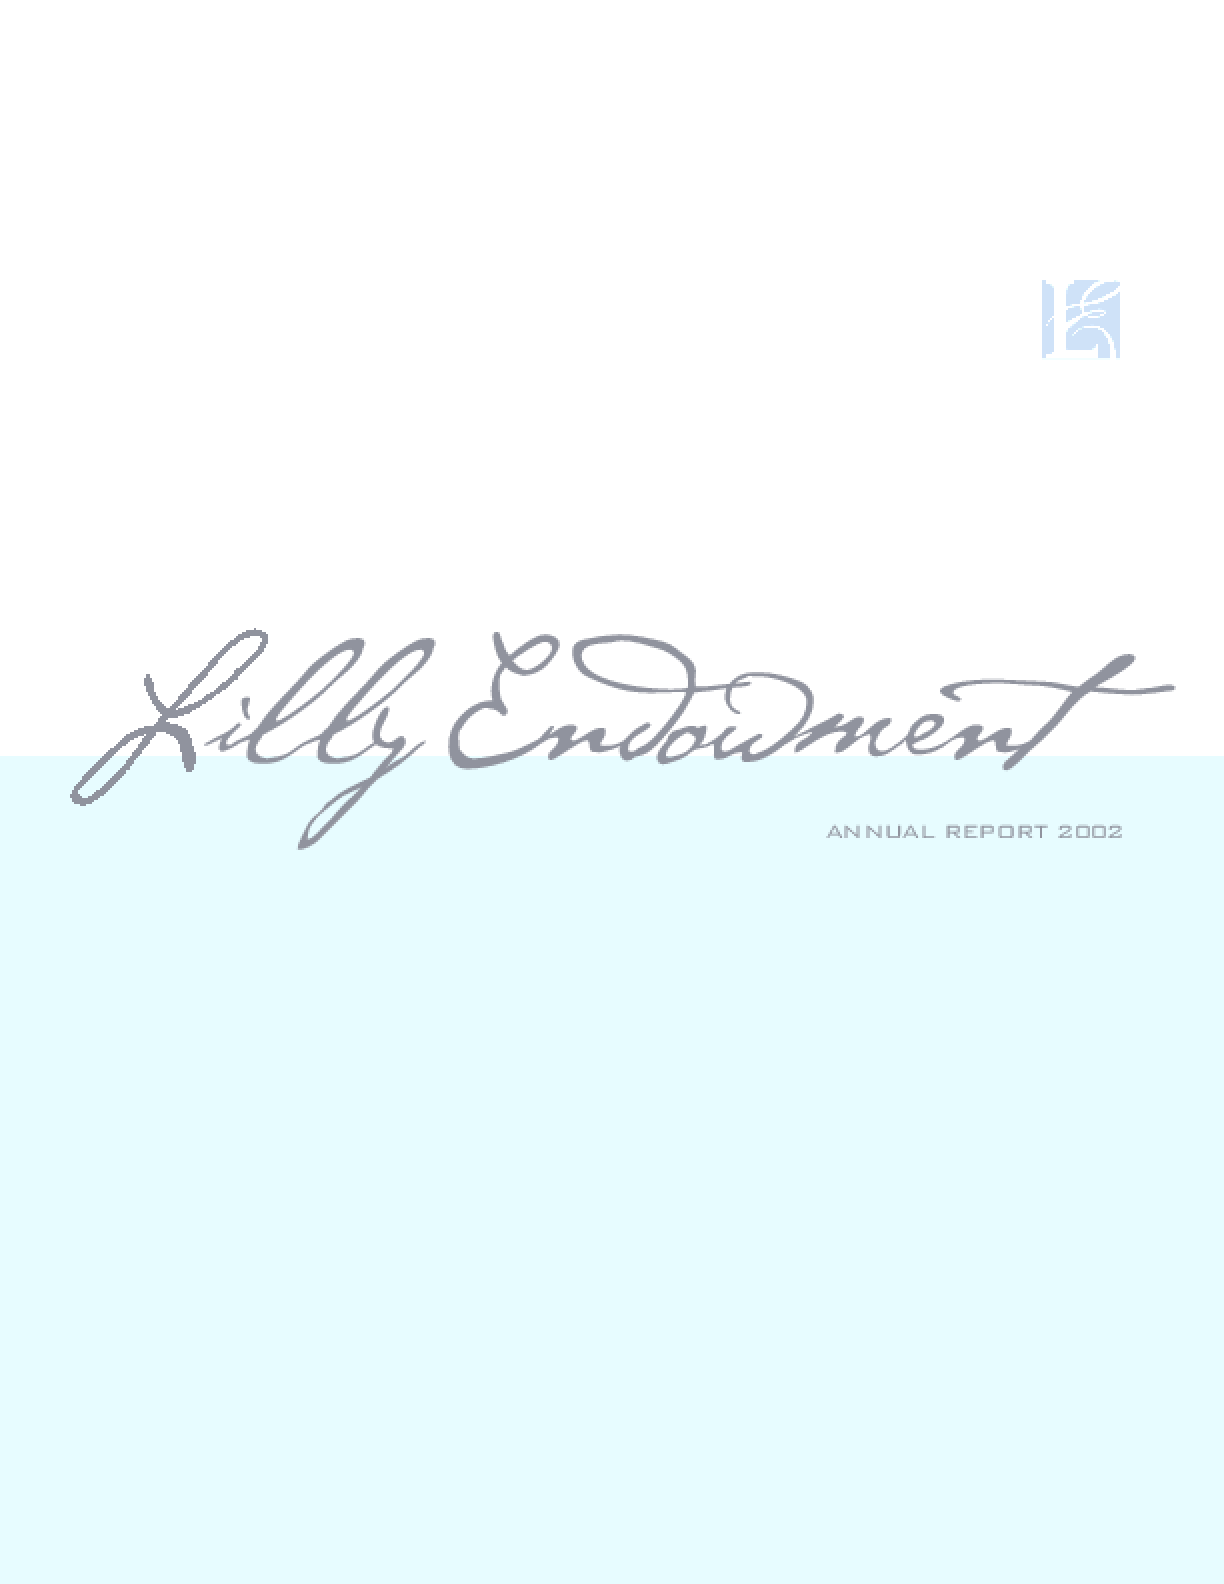 Lilly Endowment Inc. - 2002 Annual Report